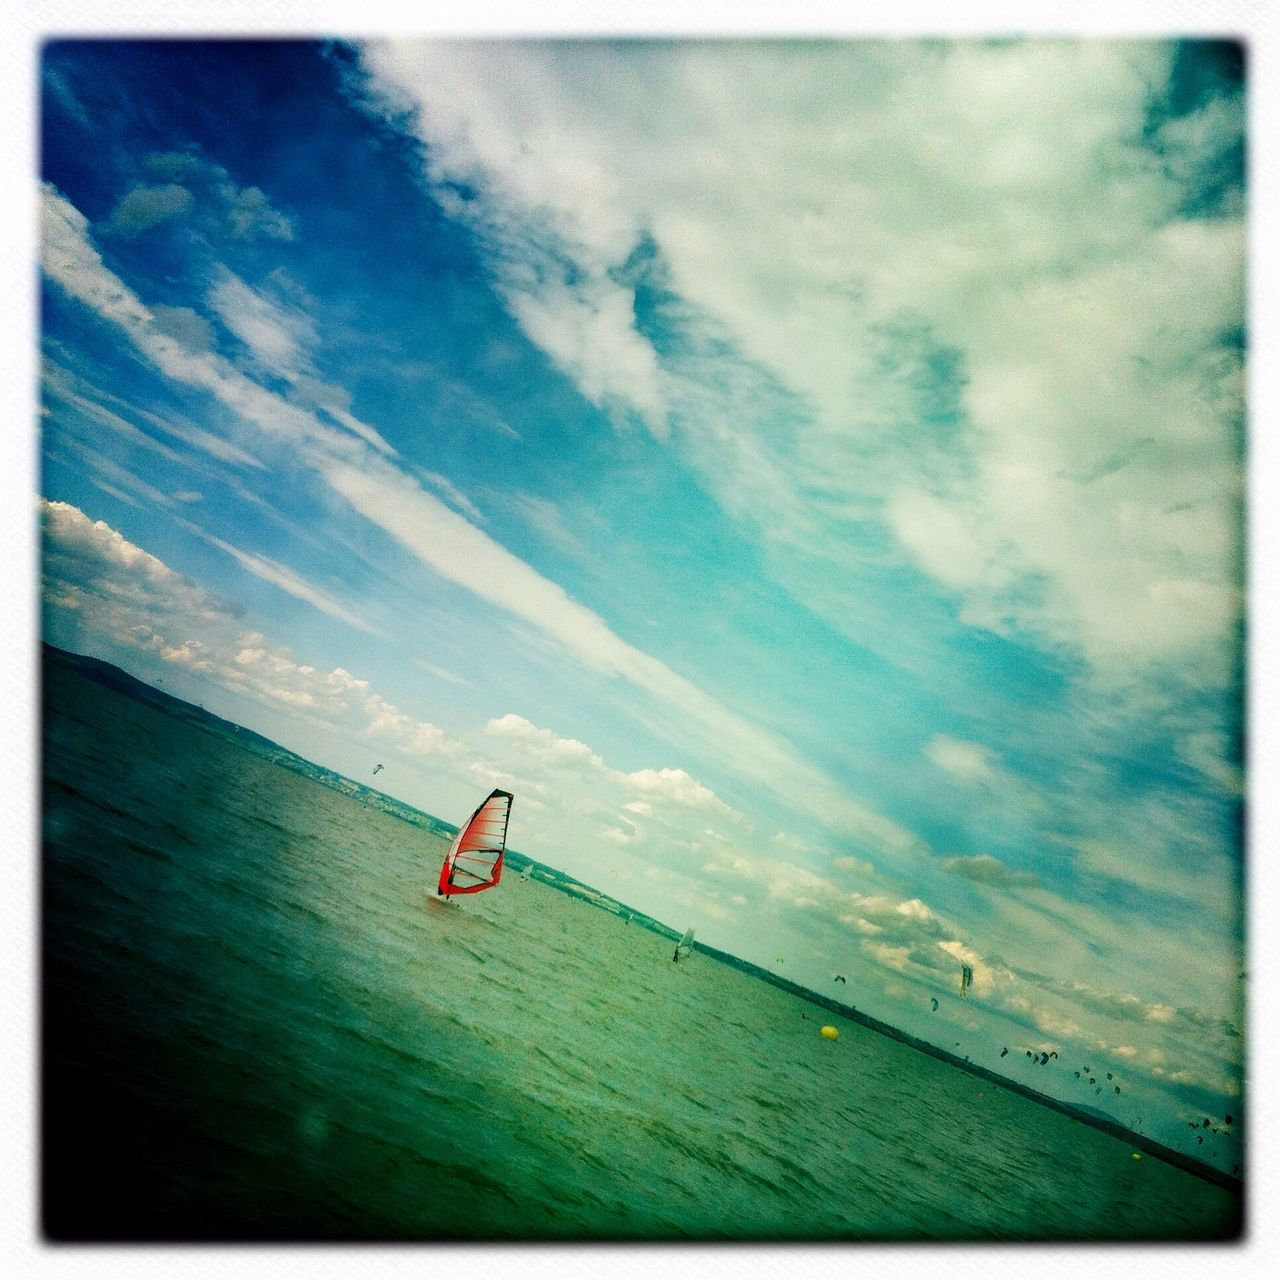 View of windsurfing in the sea